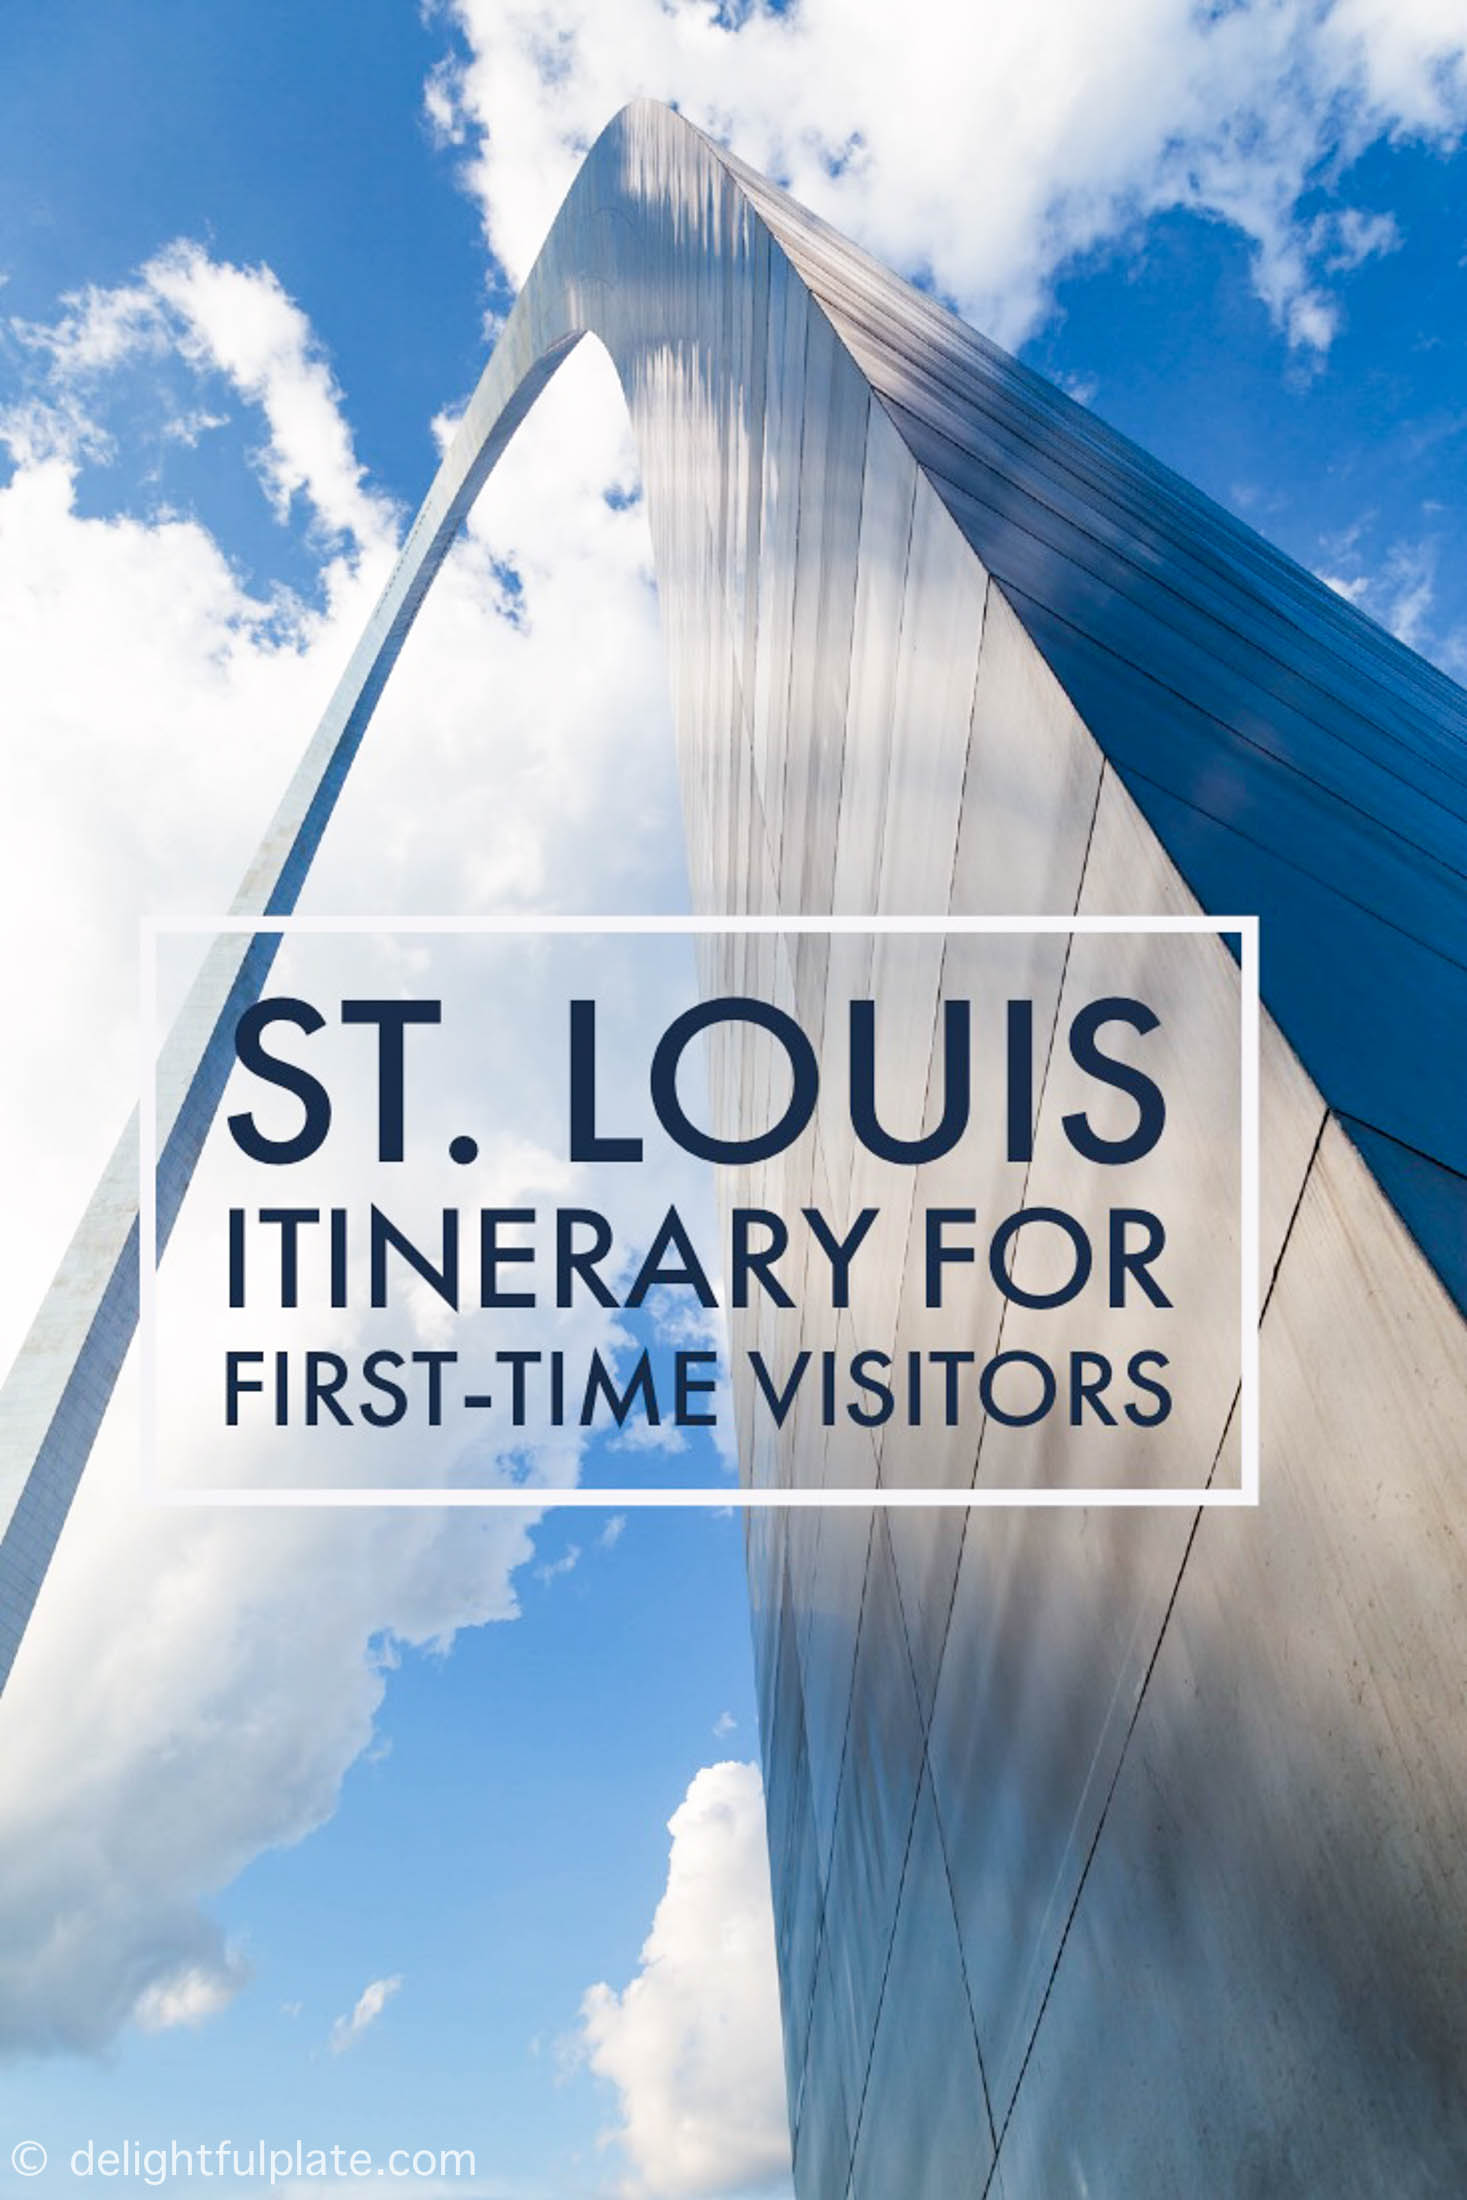 St. Louis Trip: An Itinerary for First-time Visitors